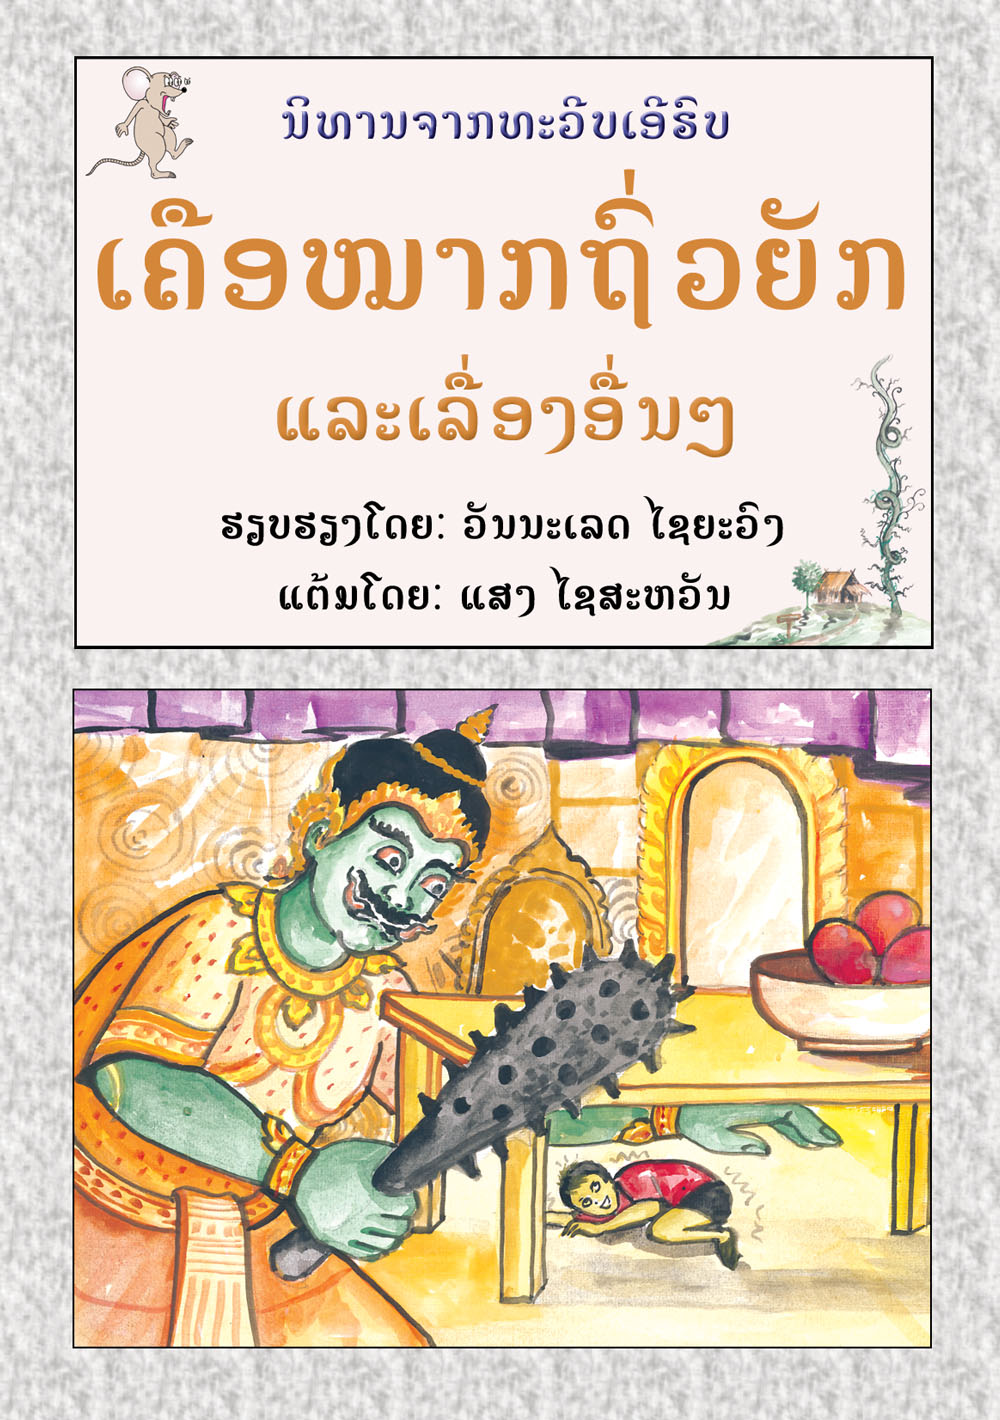 Jack and the Beanstalk large book cover, published in Lao language